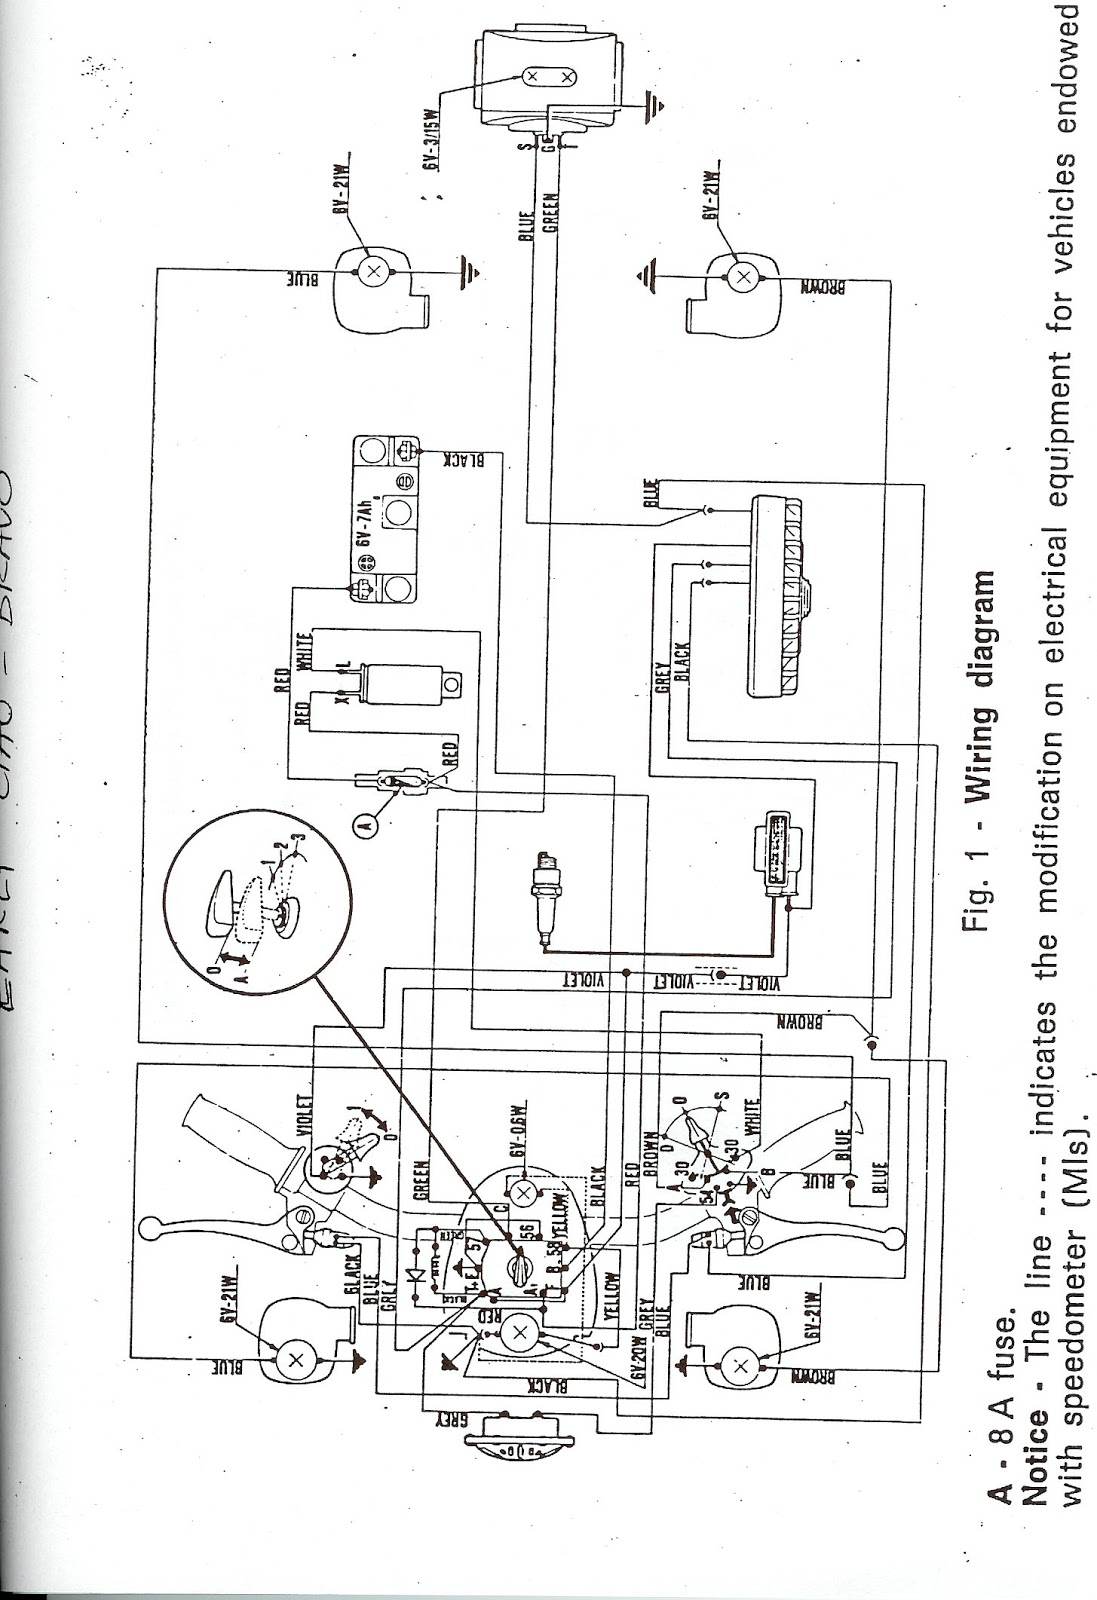 peugeot boxer wiring diagram download   37 wiring diagram